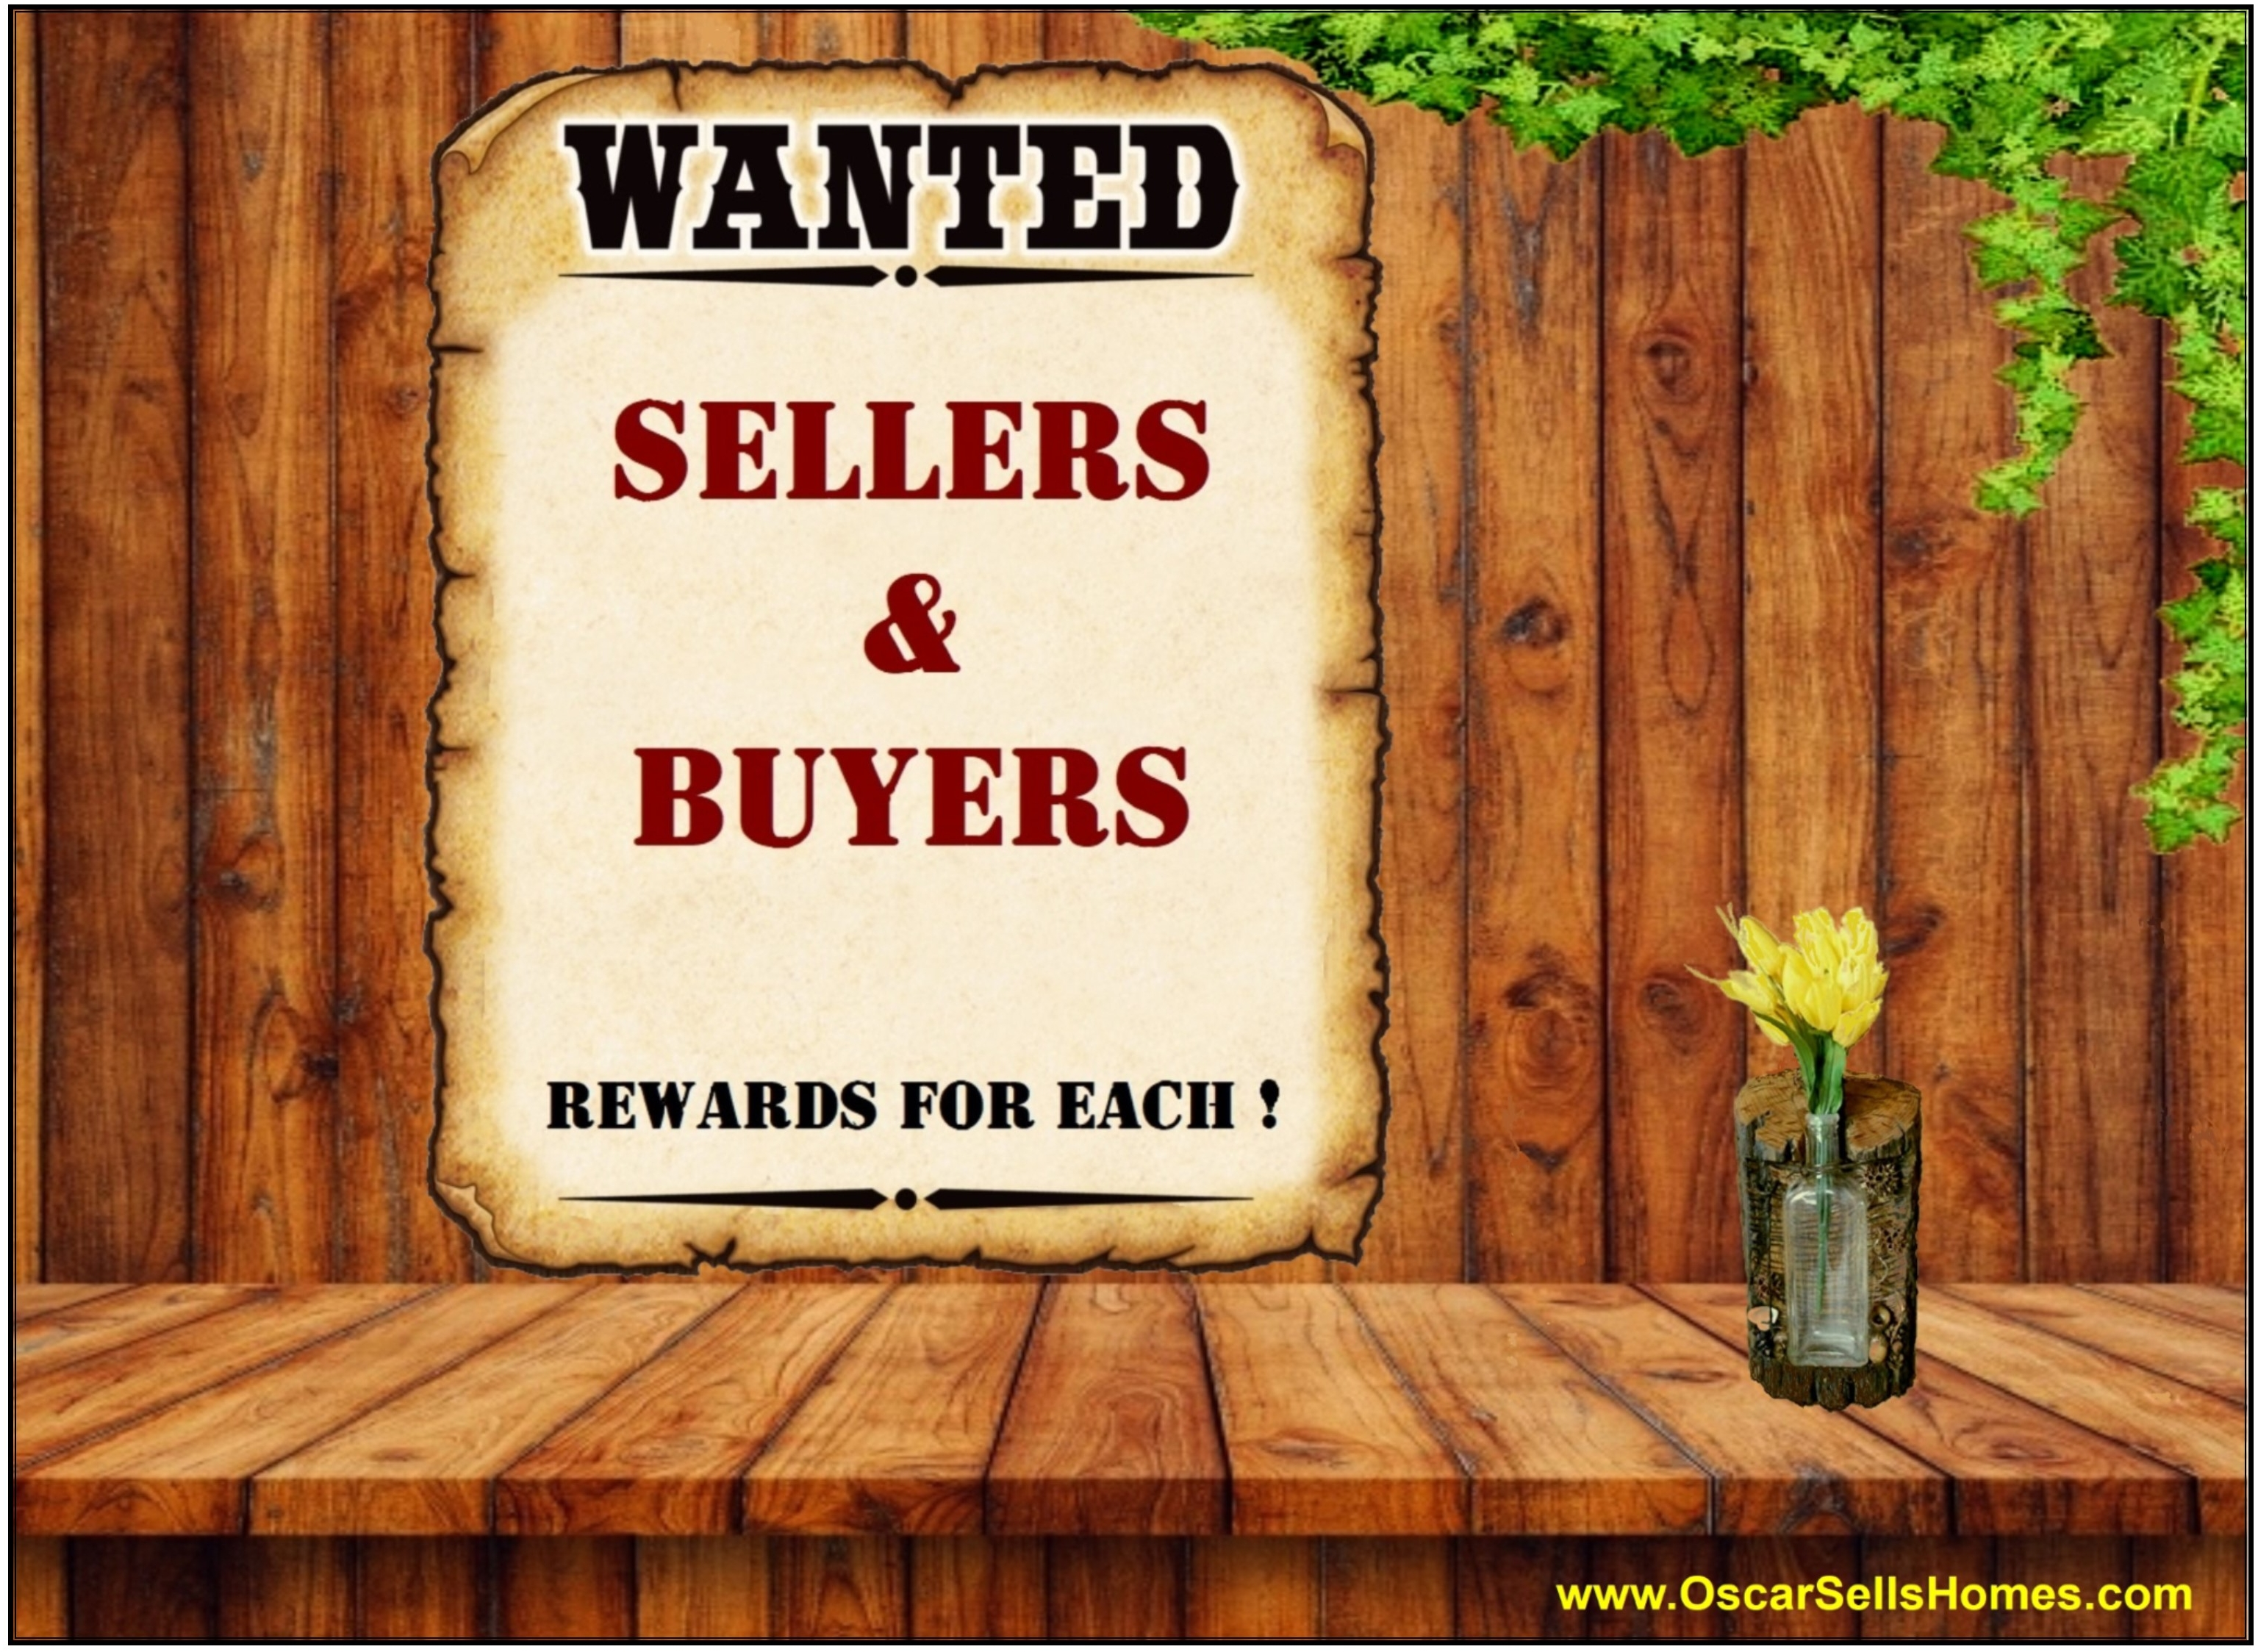 Home Sellers and Buyers wanted